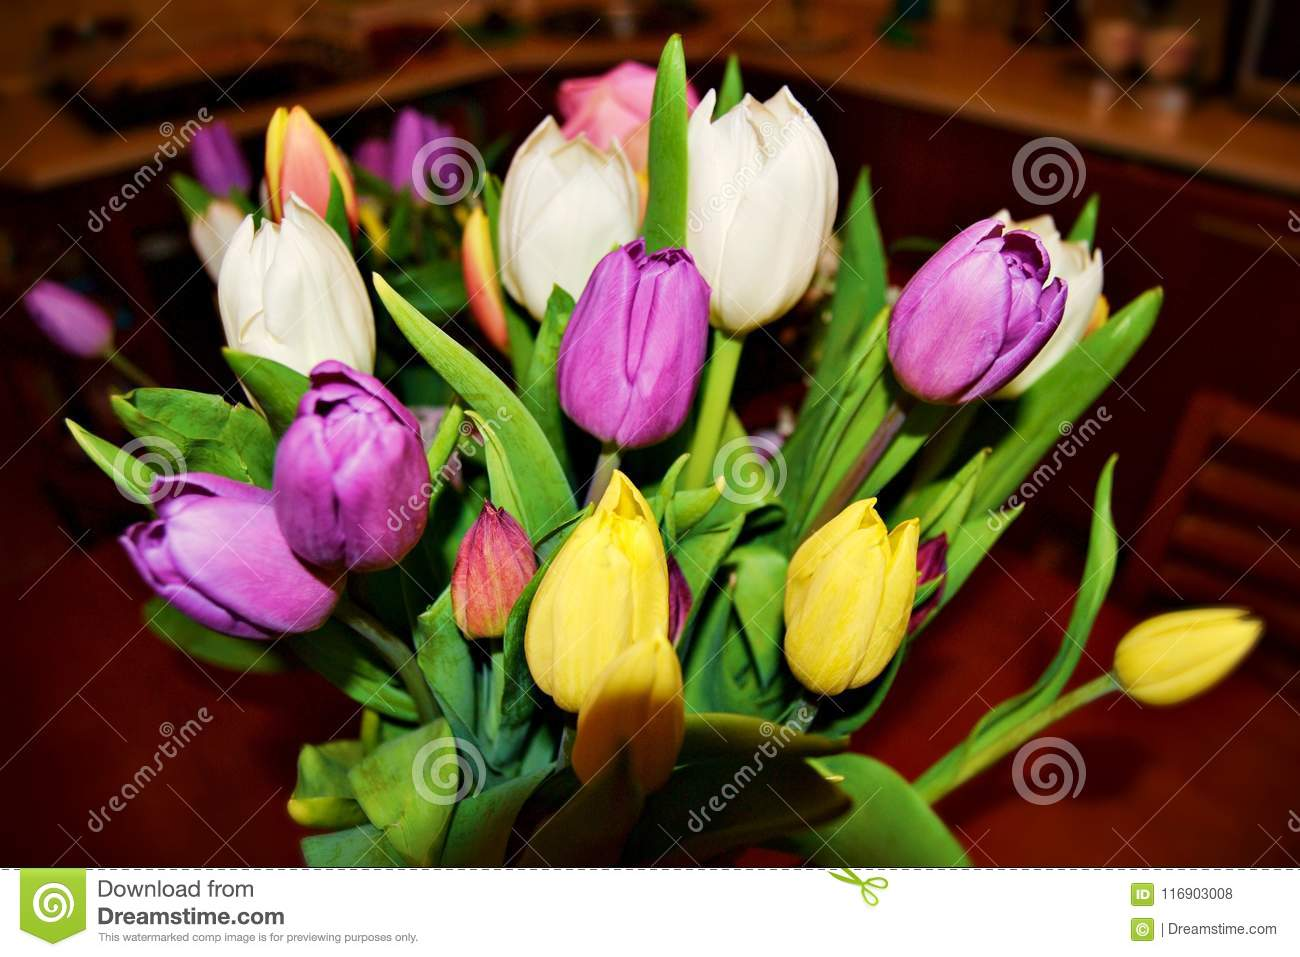 The most beautiful colorful bunch of flowers for birthday stock download the most beautiful colorful bunch of flowers for birthday stock photo image of izmirmasajfo